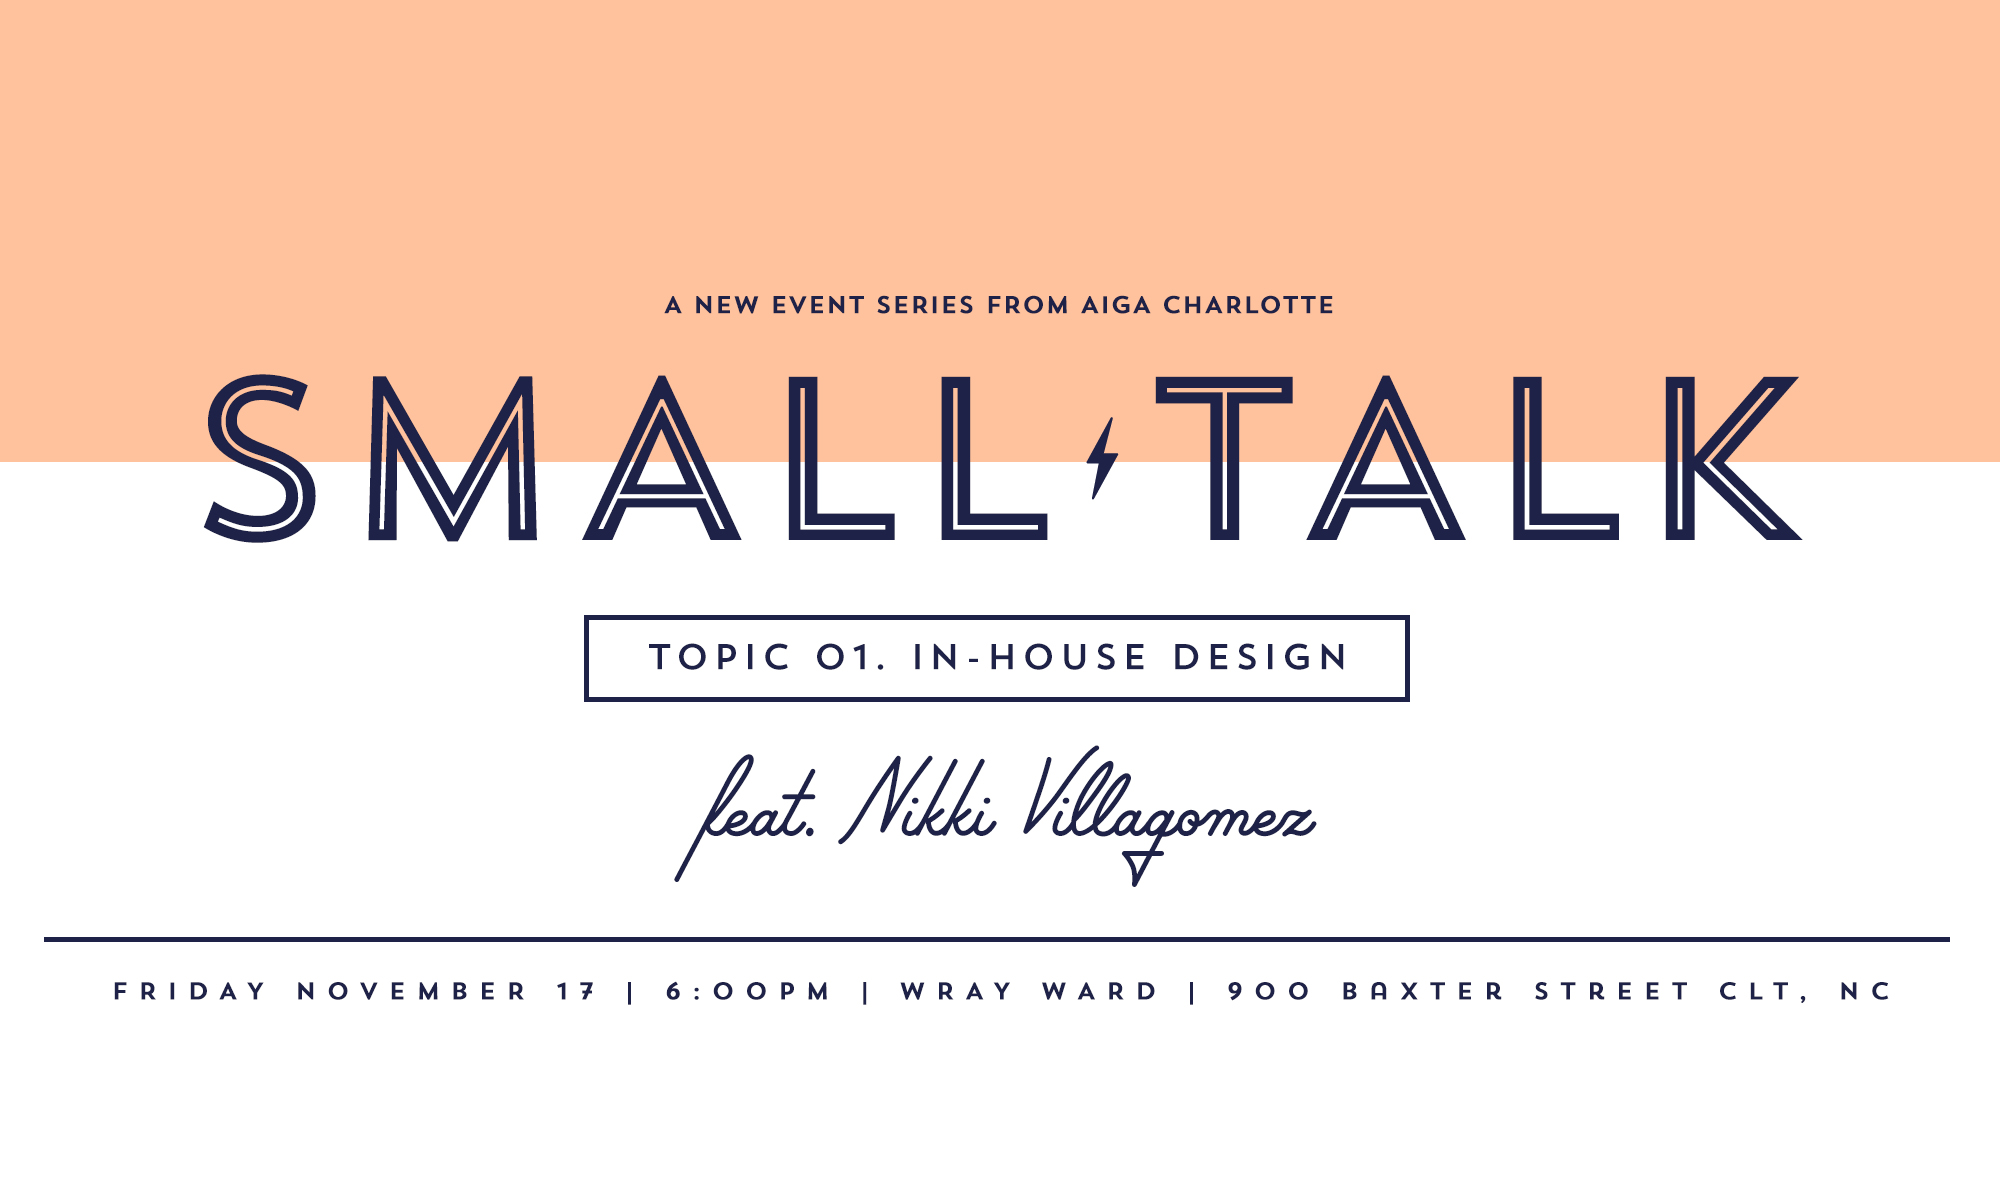 Small Talk: Nikki Villagomez | AIGA Charlotte